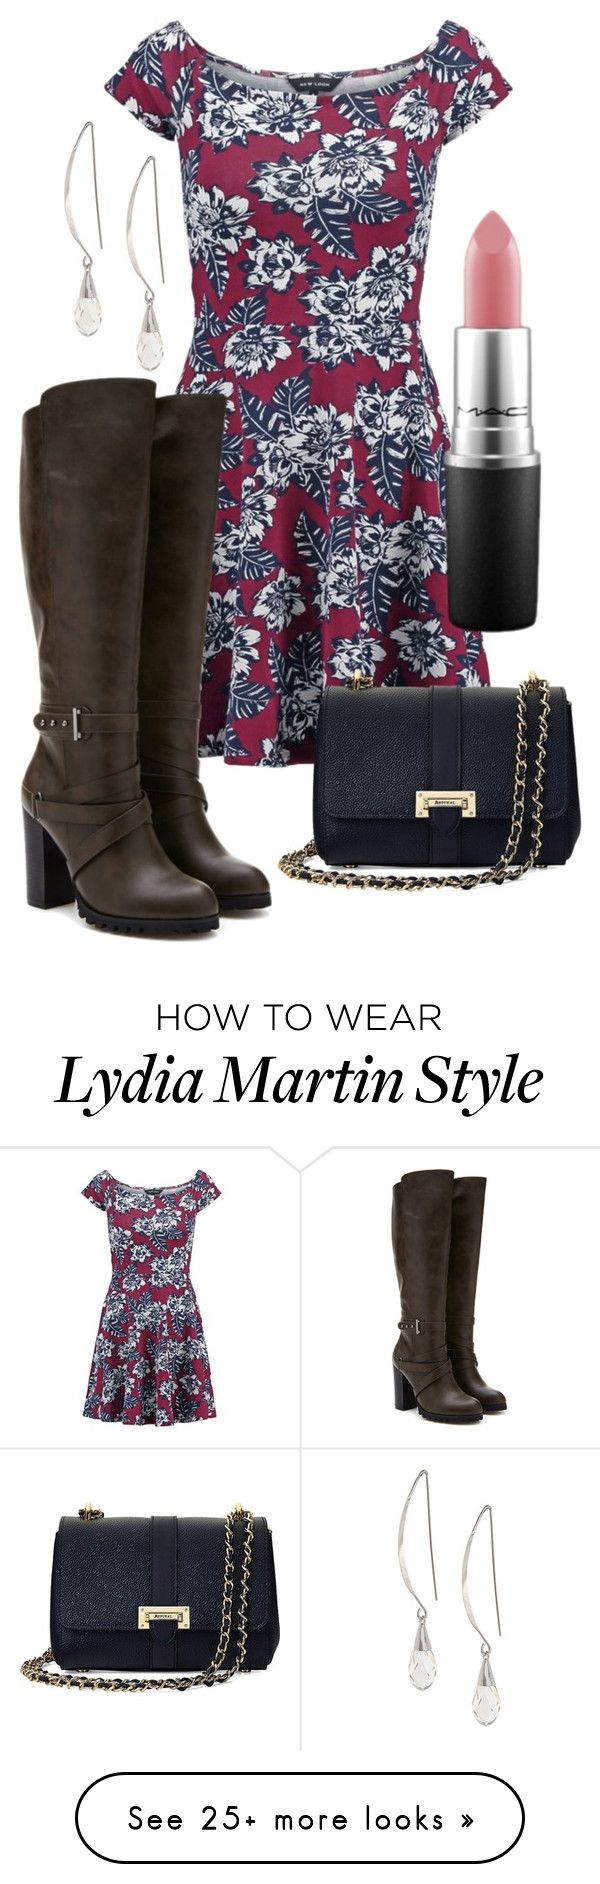 Lydia Martin Inspired Outfit - 5x06 by elainepearl on Polyvore featuring New Look, Forever 21, Aspinal of London, MAC Cosmetics, Lane Bryant, floral, Boots, dress, TeenWolf and LydiaMartin